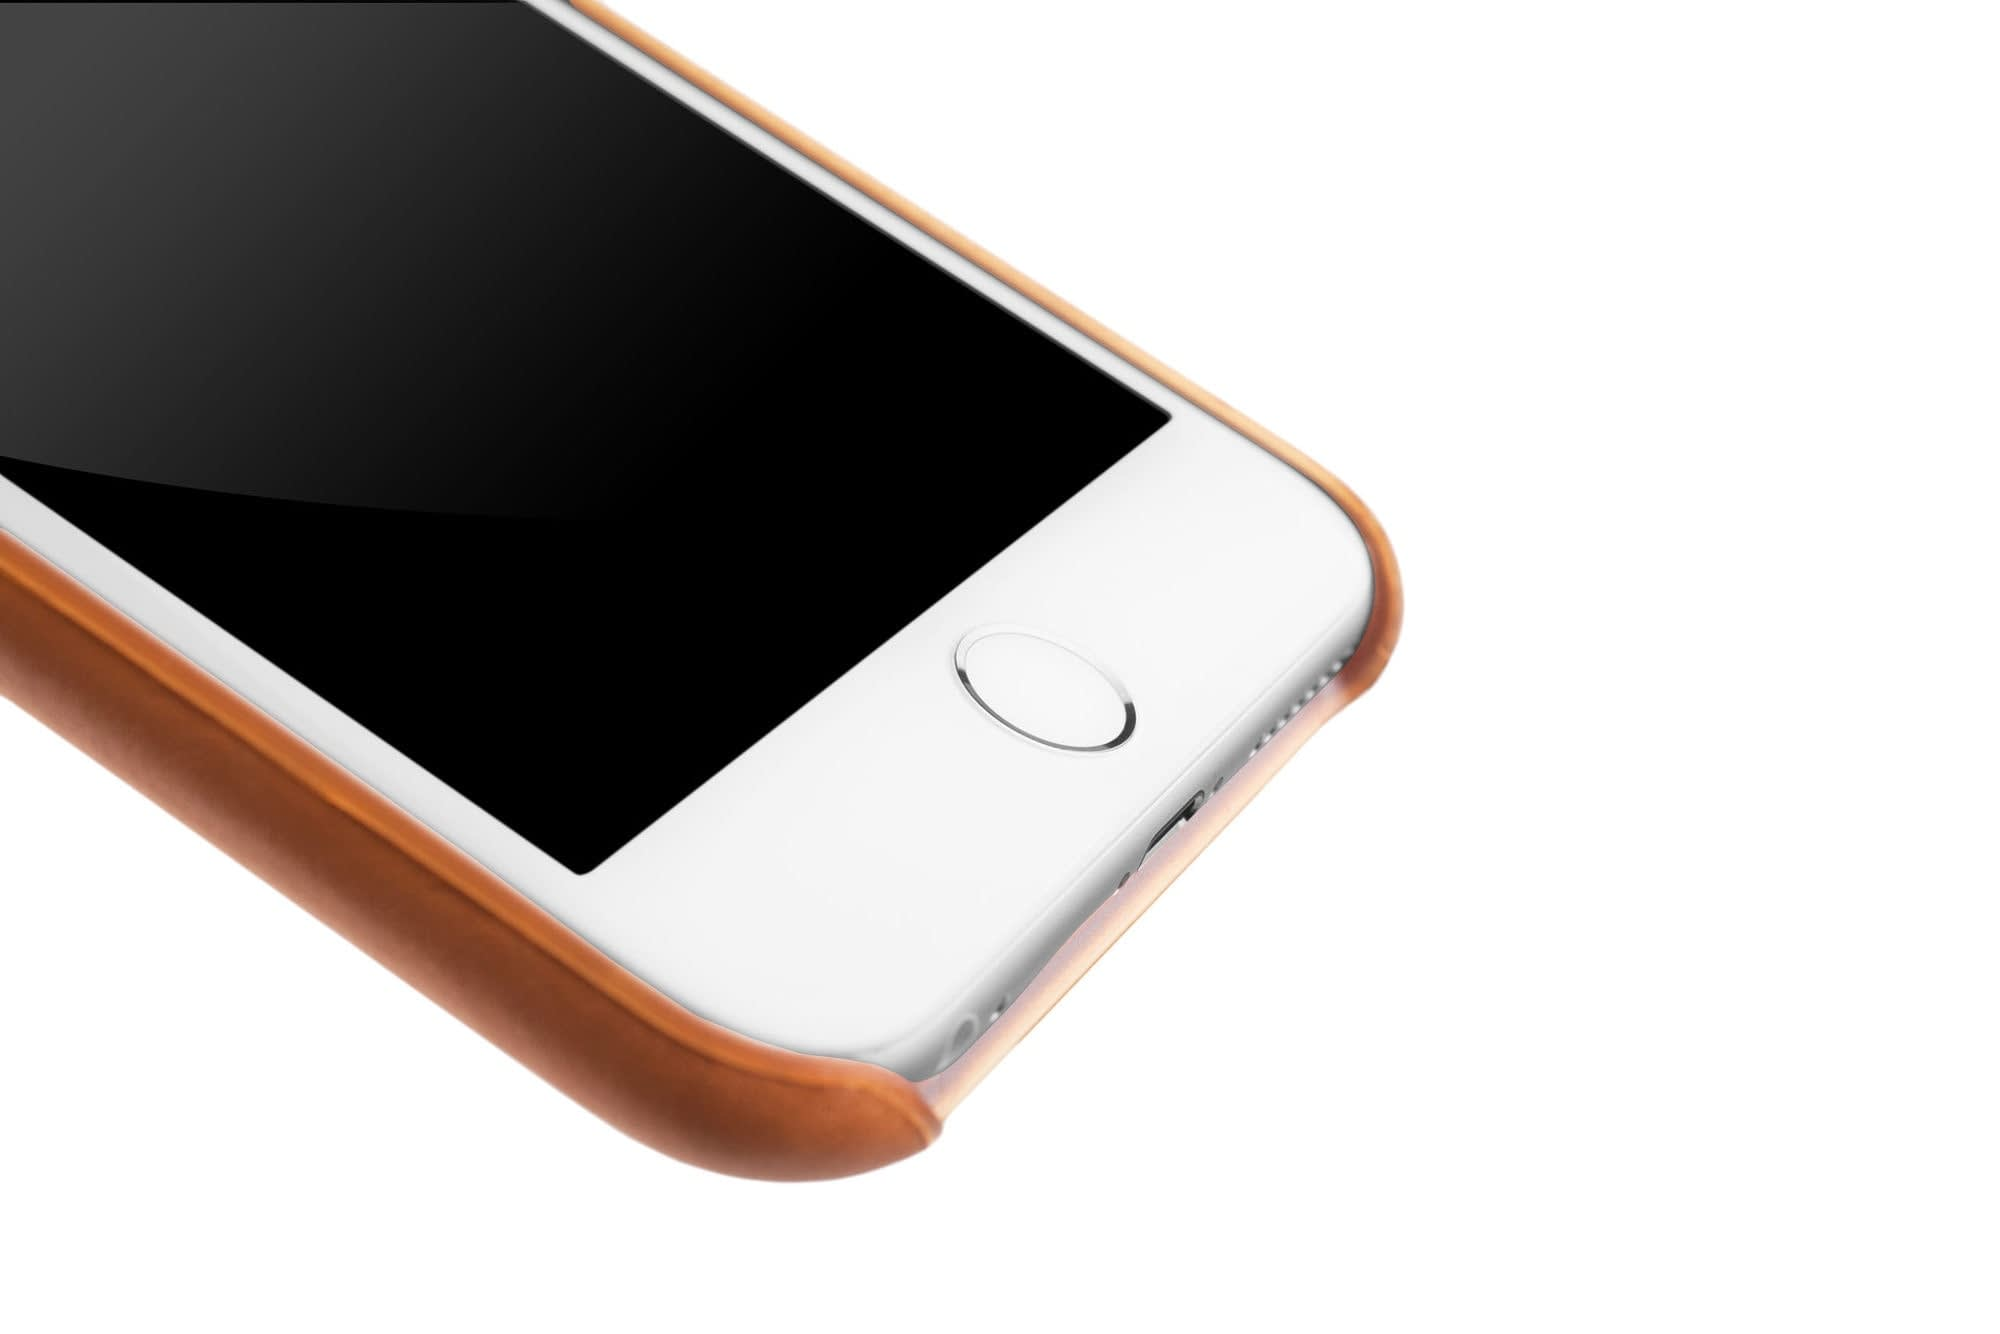 Leather Case for iPhone 6s Plus Tan 014